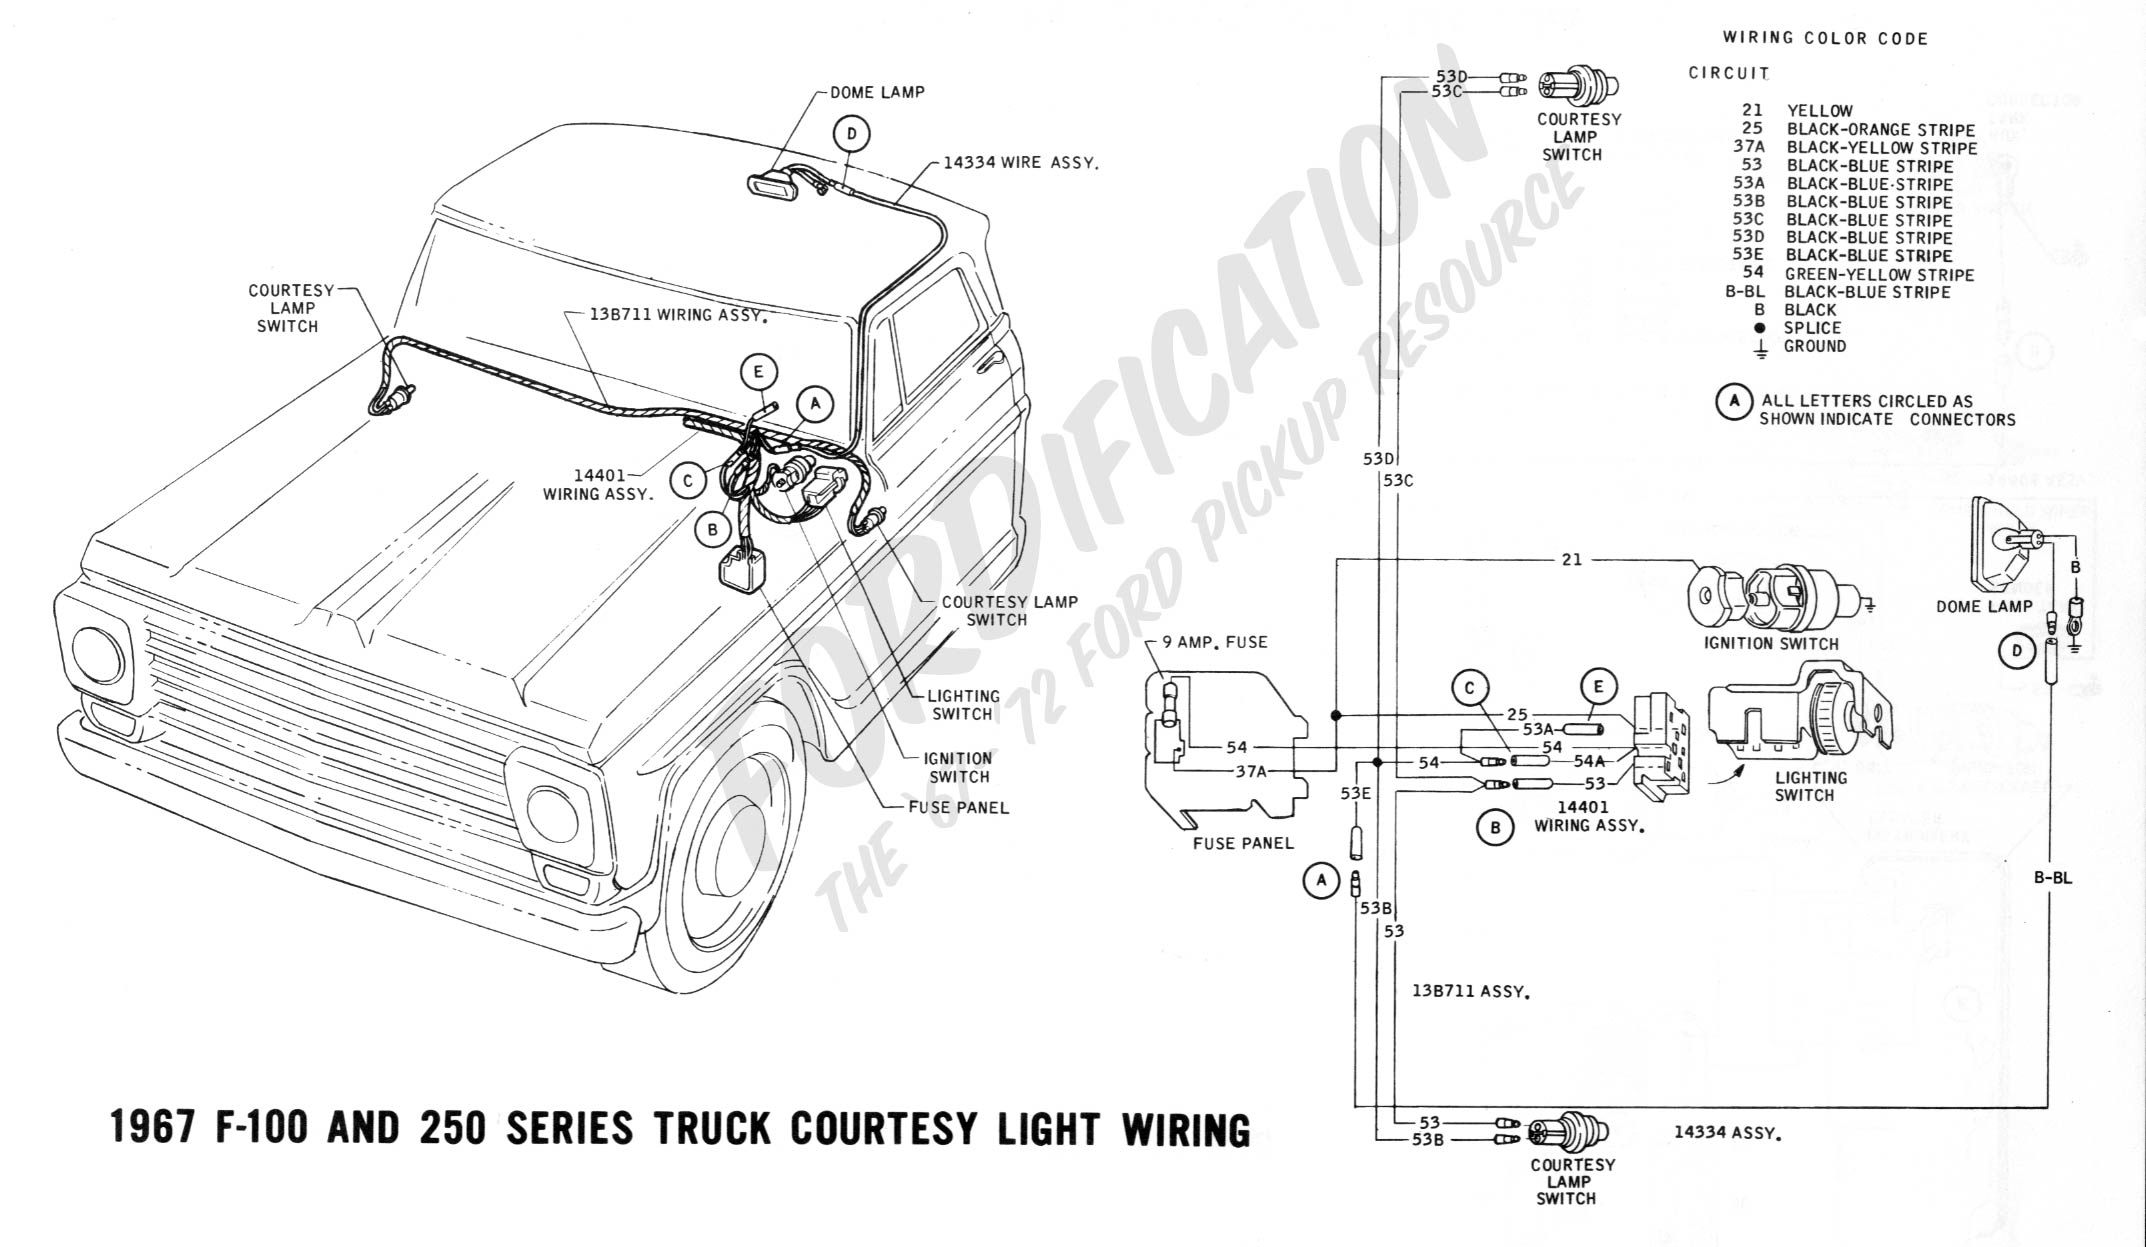 wiring 1967courtesylight wiring in ignition switch in 1966 f100 ford truck enthusiasts forums Ford E 350 Wiring Diagrams at gsmx.co